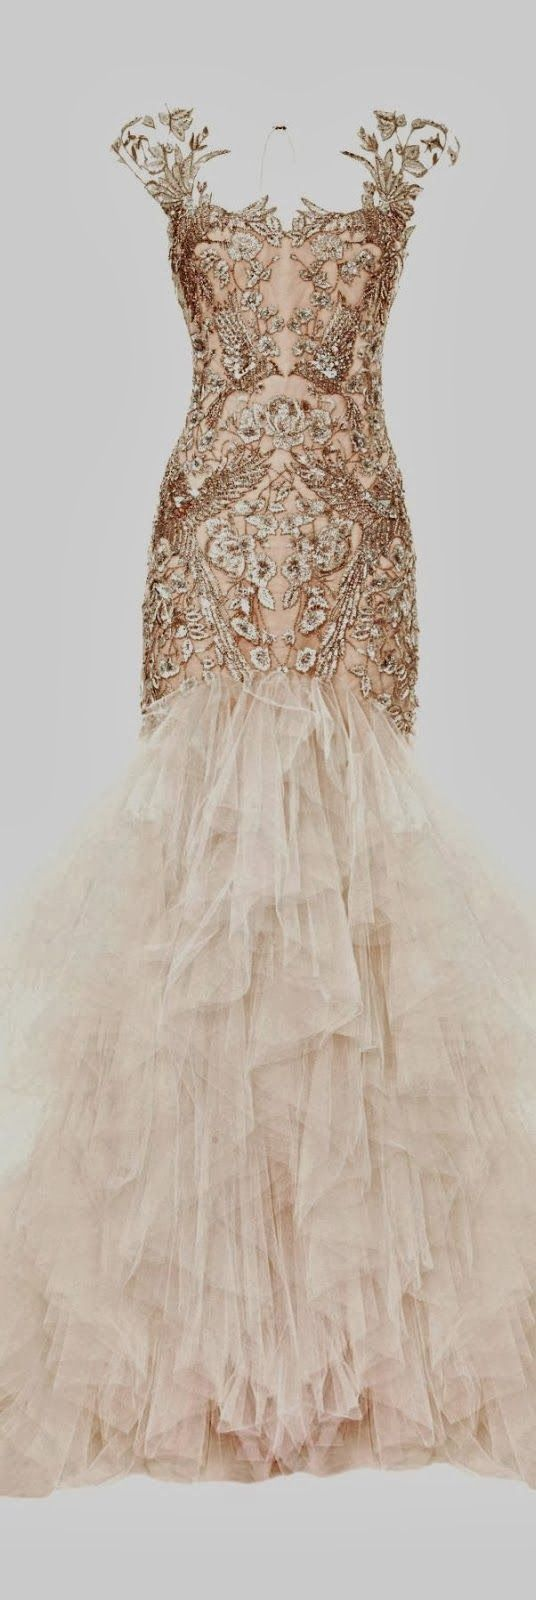 Extremely gorgeous wedding dress This would totally make me feel like I was a part of a Gossip Girl wedding